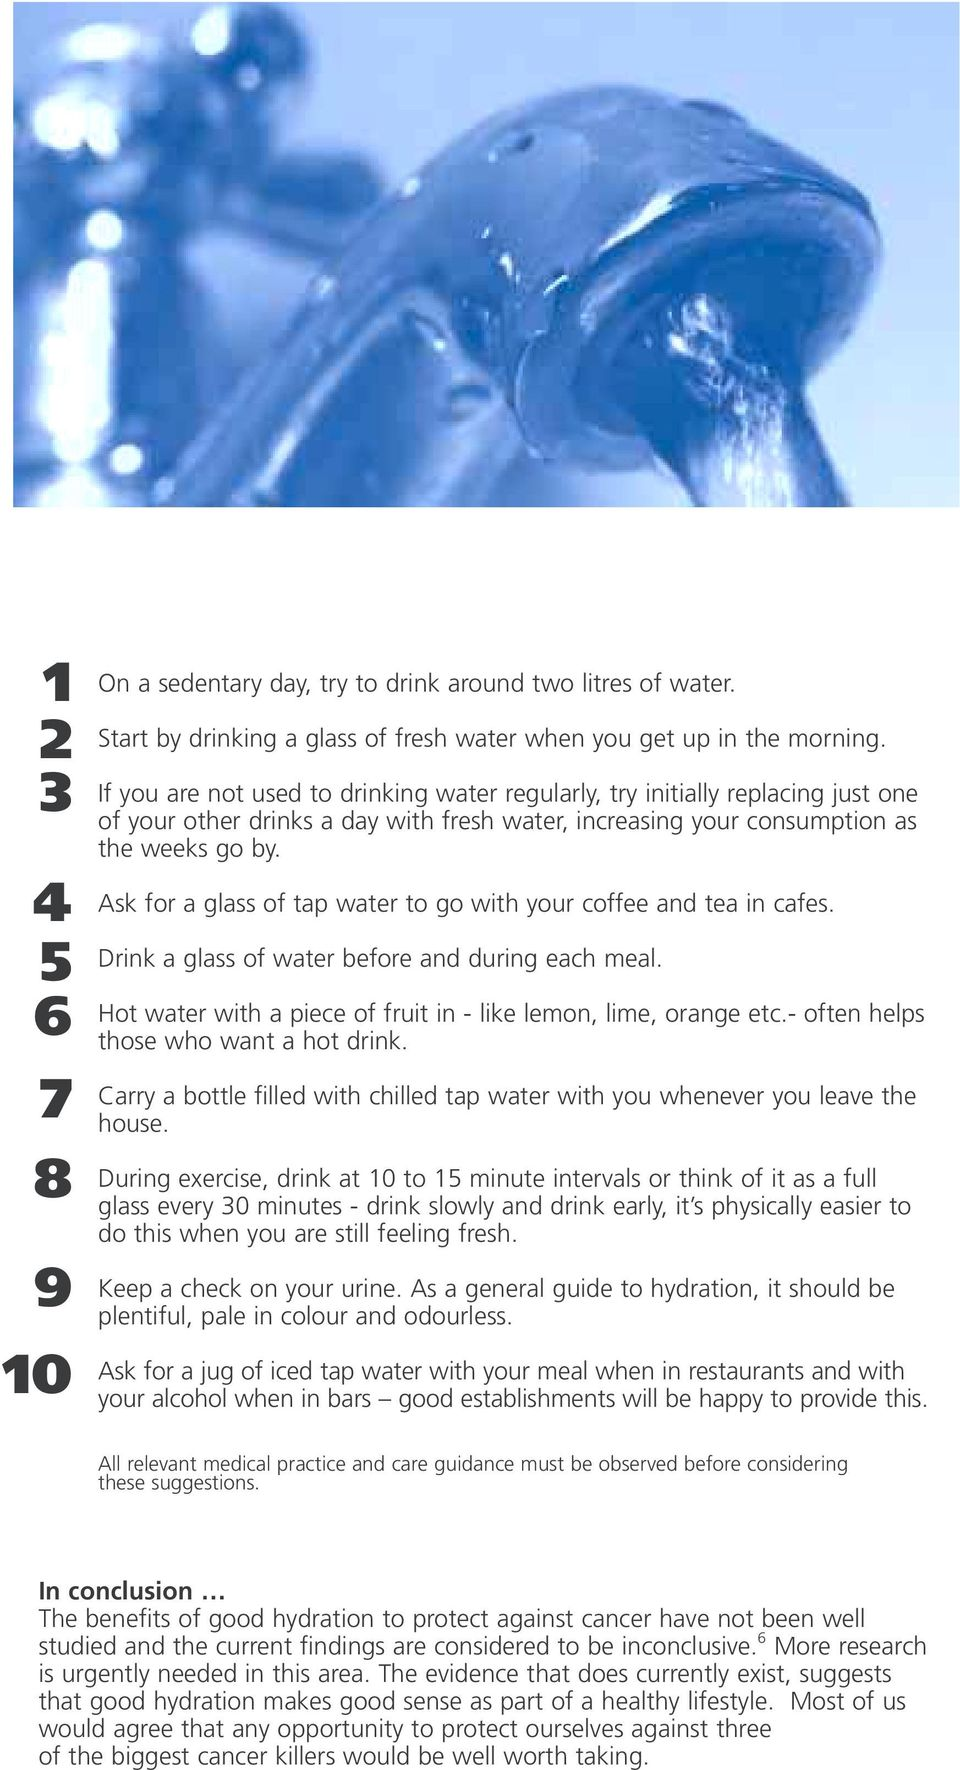 Ask for a gass of tap water to go with your coffee and tea in cafes. Drink a gass of water before and during each mea. Hot water with a piece of fruit in - ike emon, ime, orange etc.